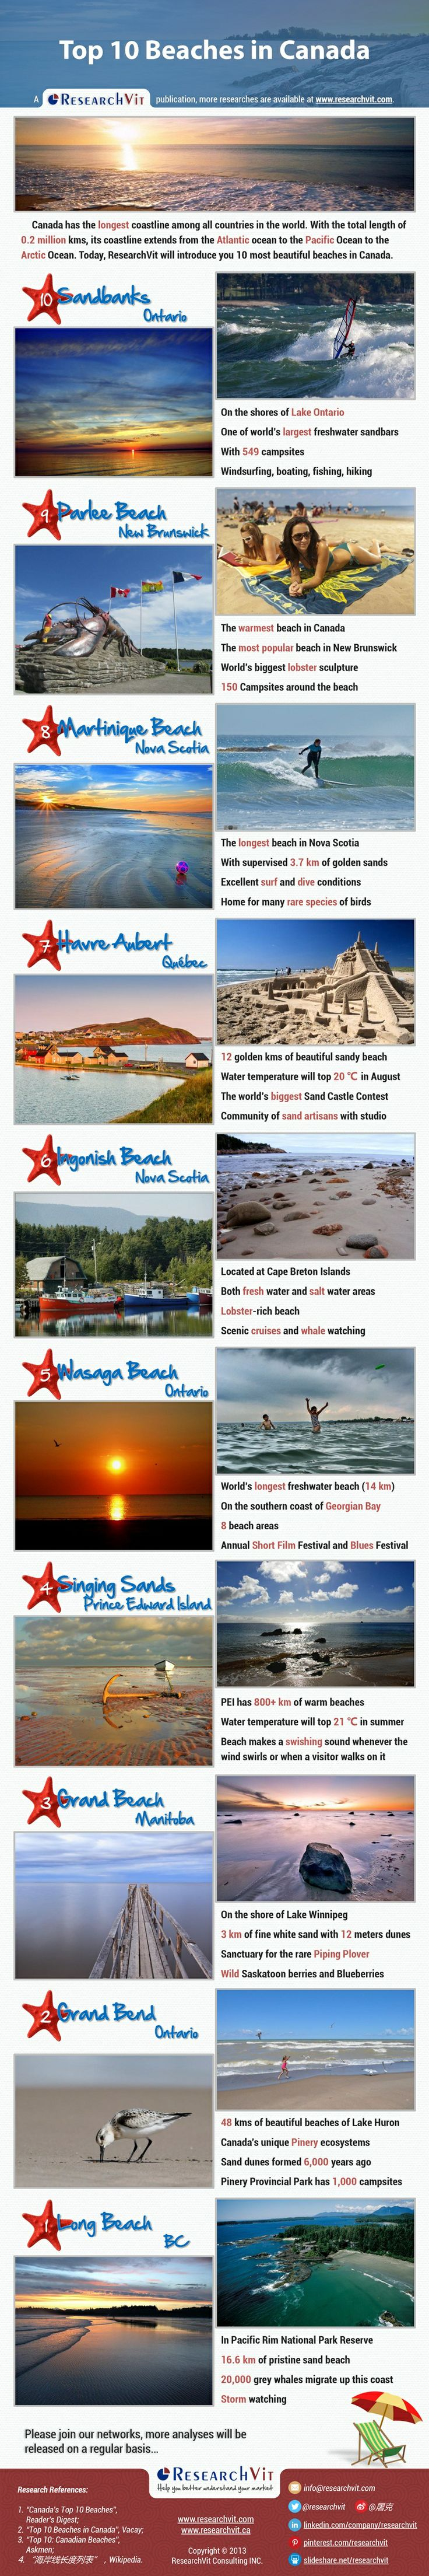 Top 10 Beaches in Canada -  Canada has the longest coastline among all countries in the world. With the total length of 0.2 million kms, its coastline extends from the Atlantic ocean to the Pacific Ocean to the Arctic Ocean. Today, ResearchVit will introduce you 10 most beautiful beaches in Canada.